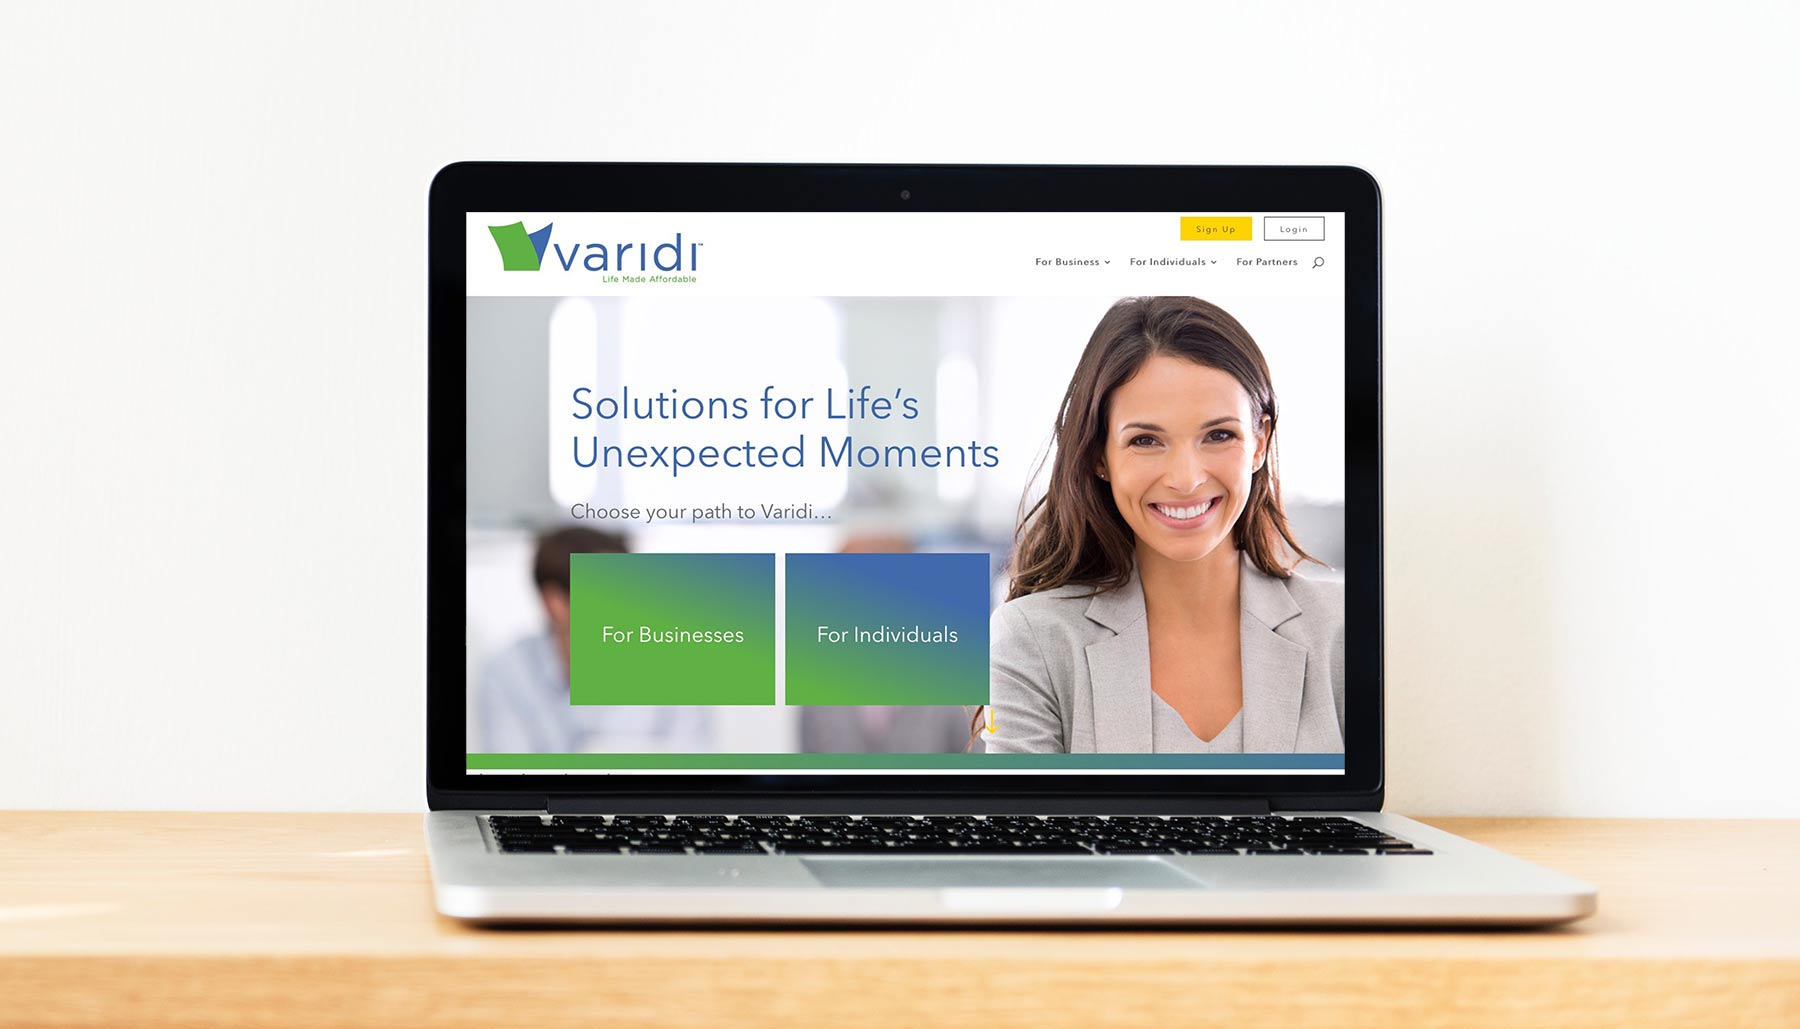 varidi website design